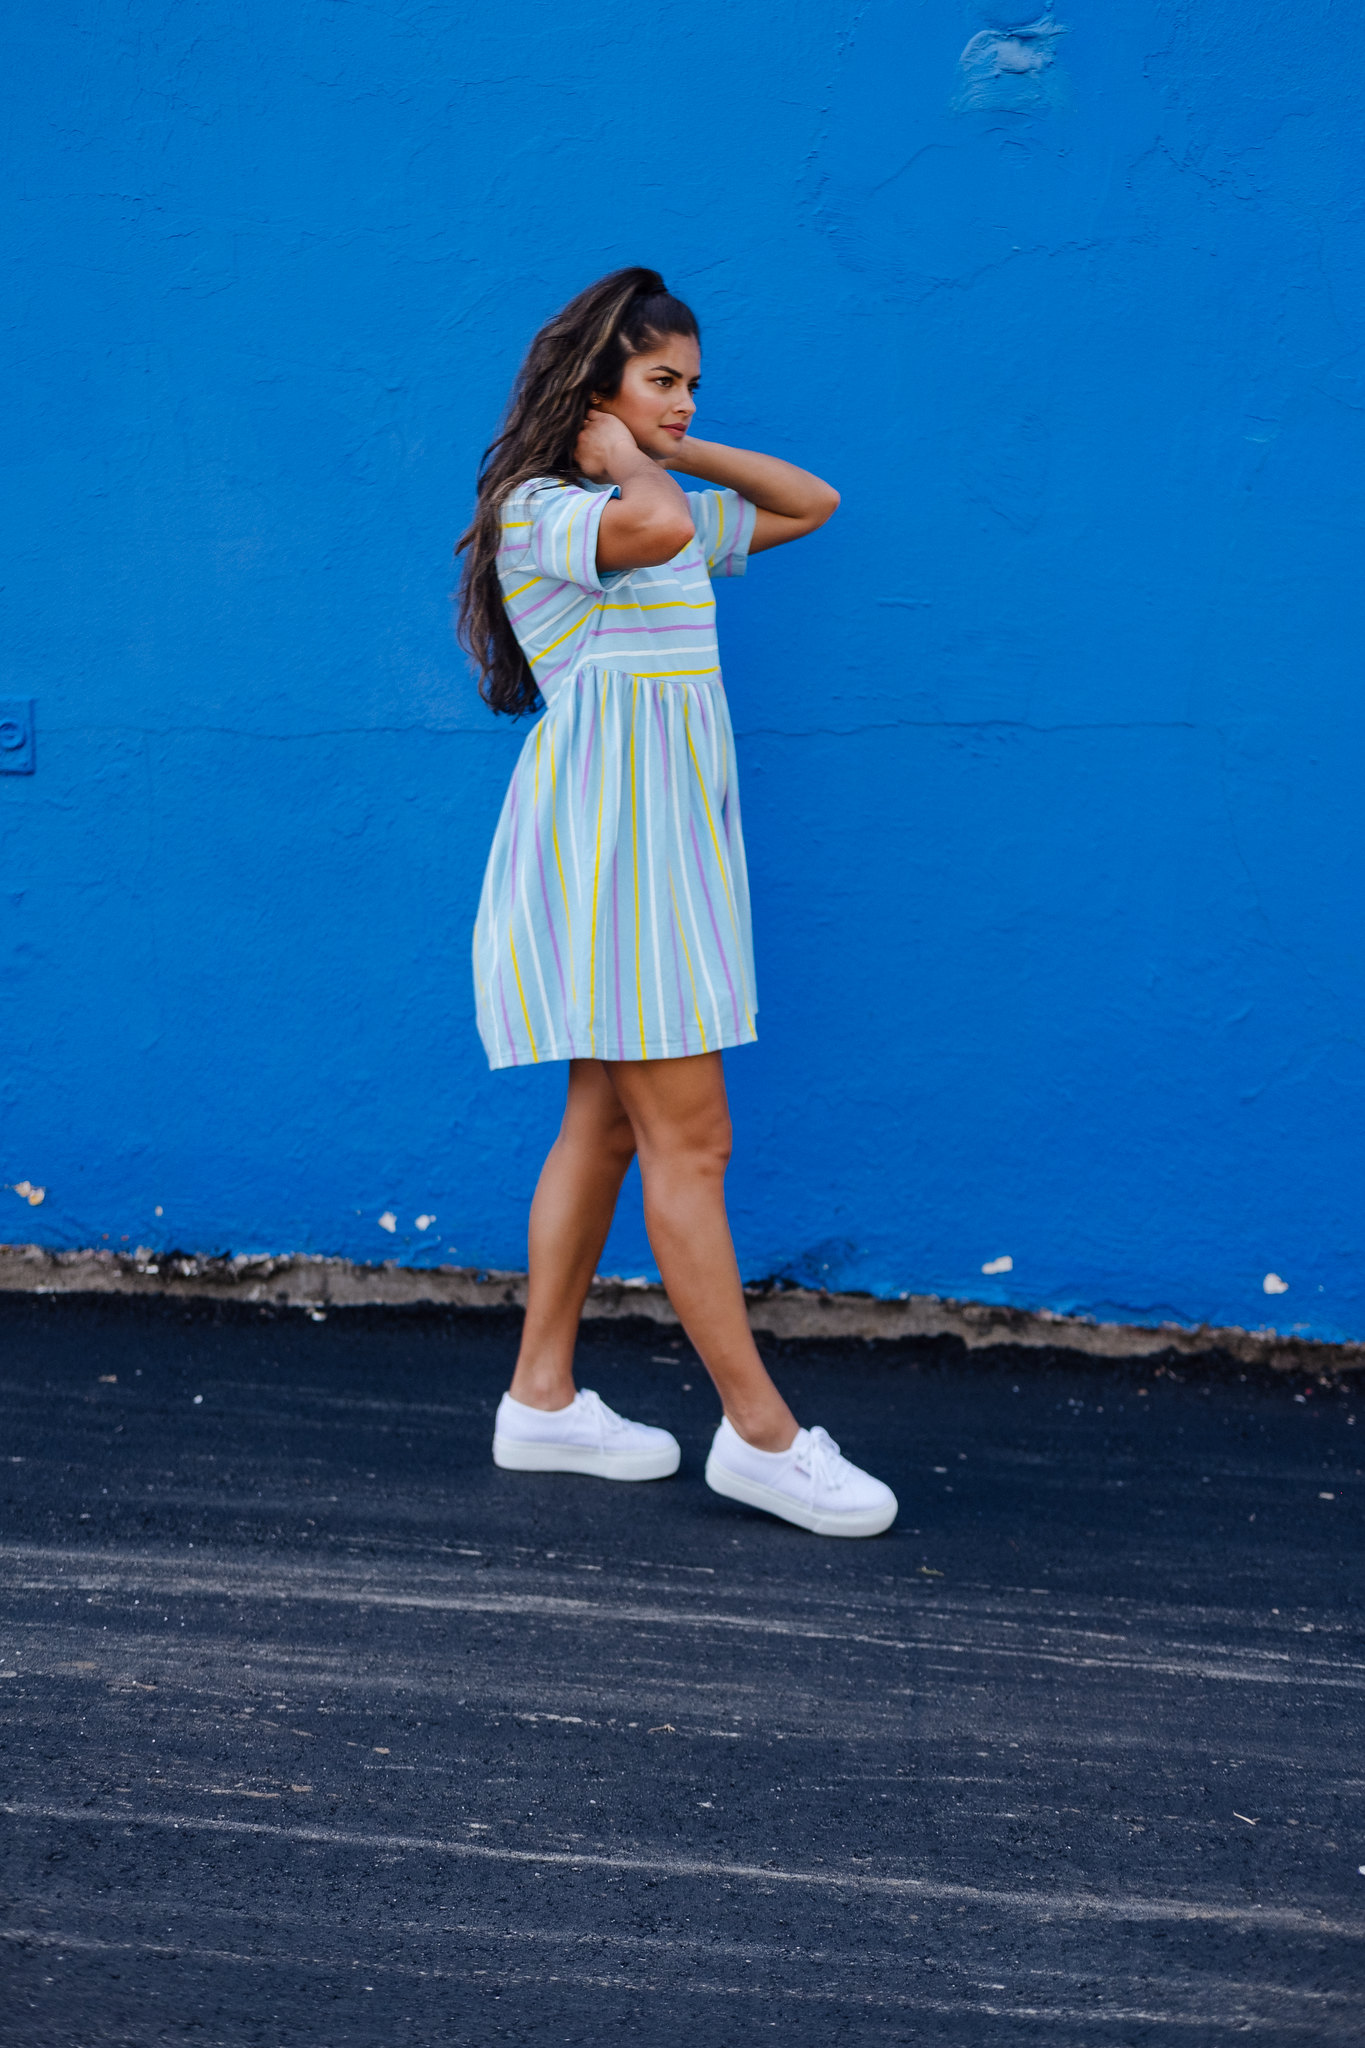 Fall 2018 outfit formula, Priya the Blog, Nashville fashion blog, Nashville fashion blogger, Nashville style blog, Nashville style blogger, platform Supergas, platform Superga trainers, smock dress for Fall, babydoll dress for Fall, babydoll dress with platform sneakers, how to wear platform sneakers, Fall outfit with babydoll dress, ASOS smock dress